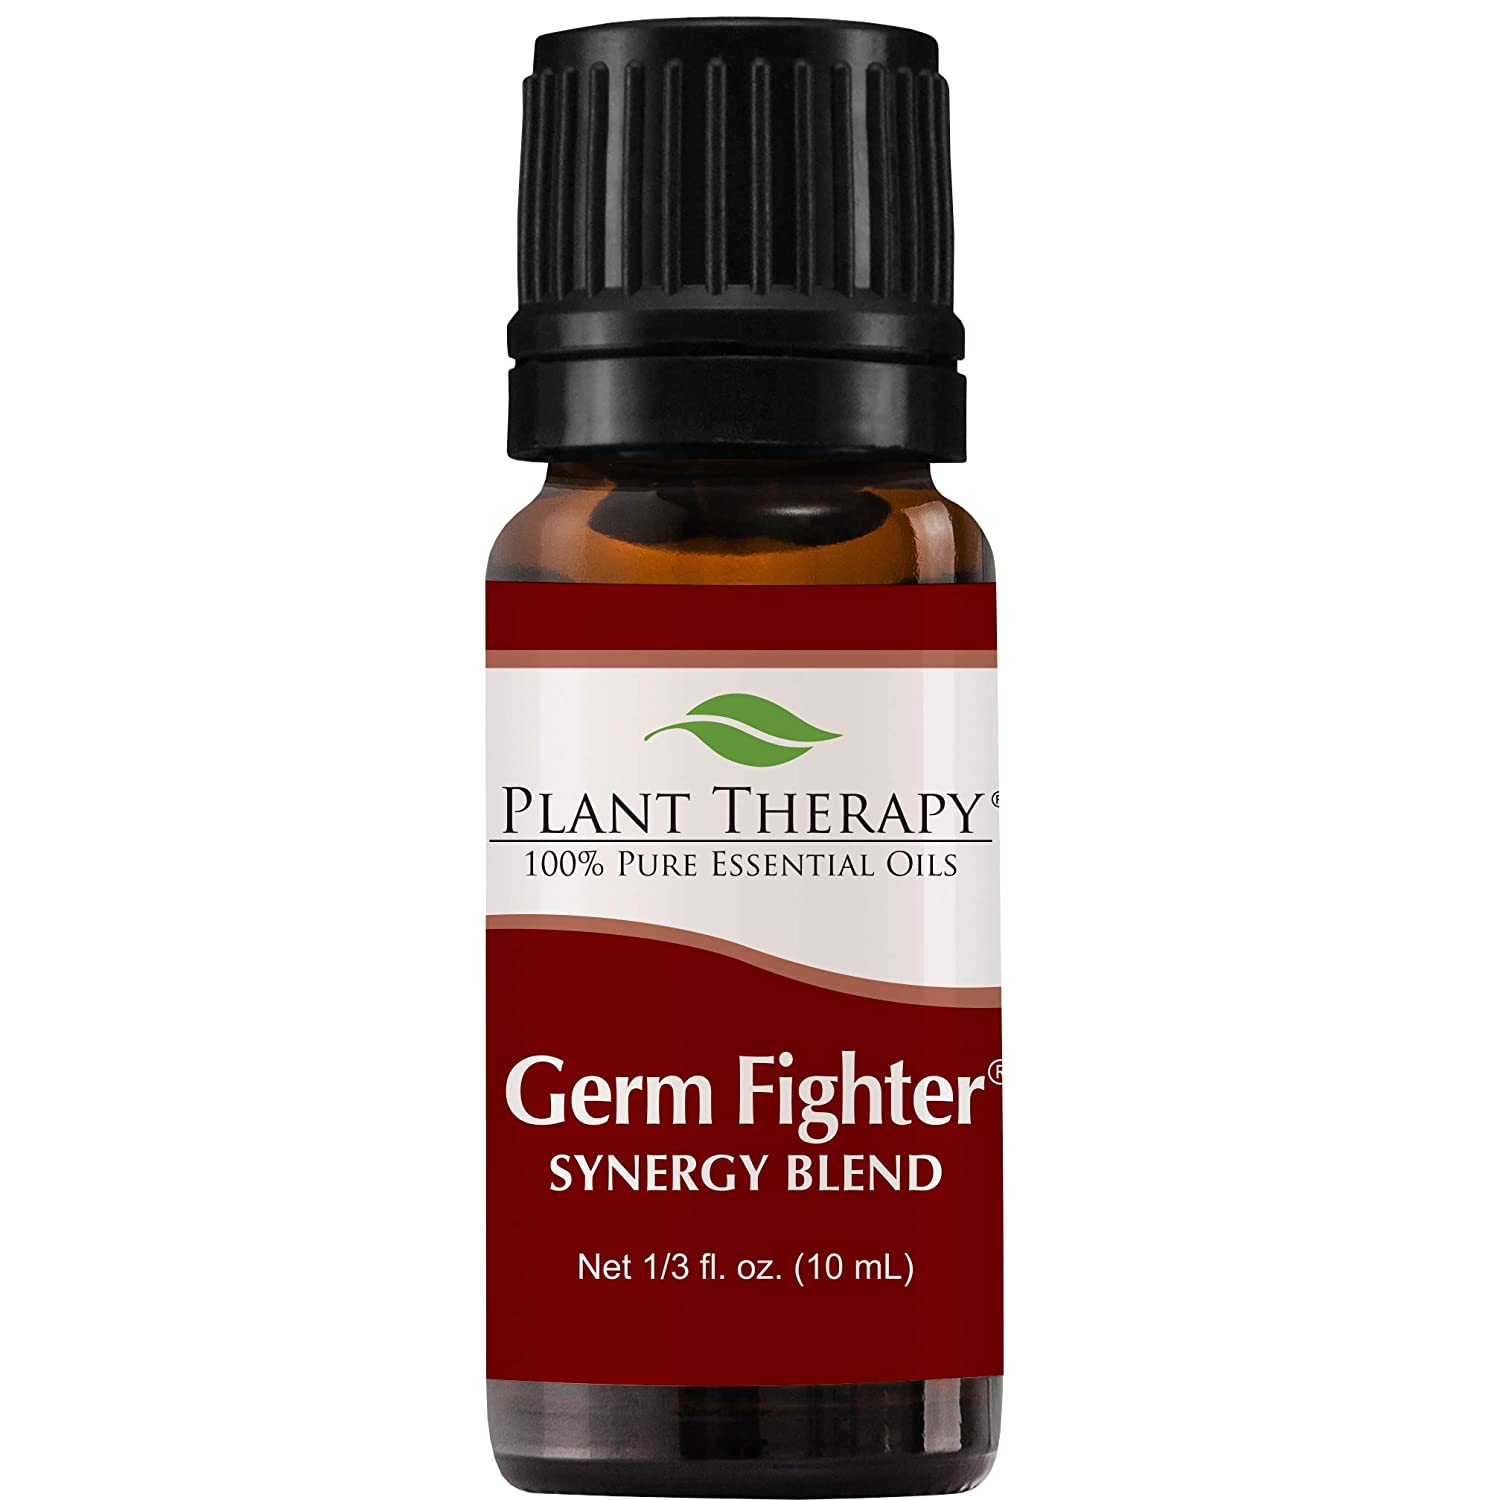 Germ Fighter Synergy Essential Oil Blend. 10 ml (1/3 oz). 100% Pure, Undiluted, Therapeutic Grade. (Blend of: Lemon, Clove Bud, Cinnamon Bark, Eucalyptus, and Rosemary) Plant Therapy Essential Oils